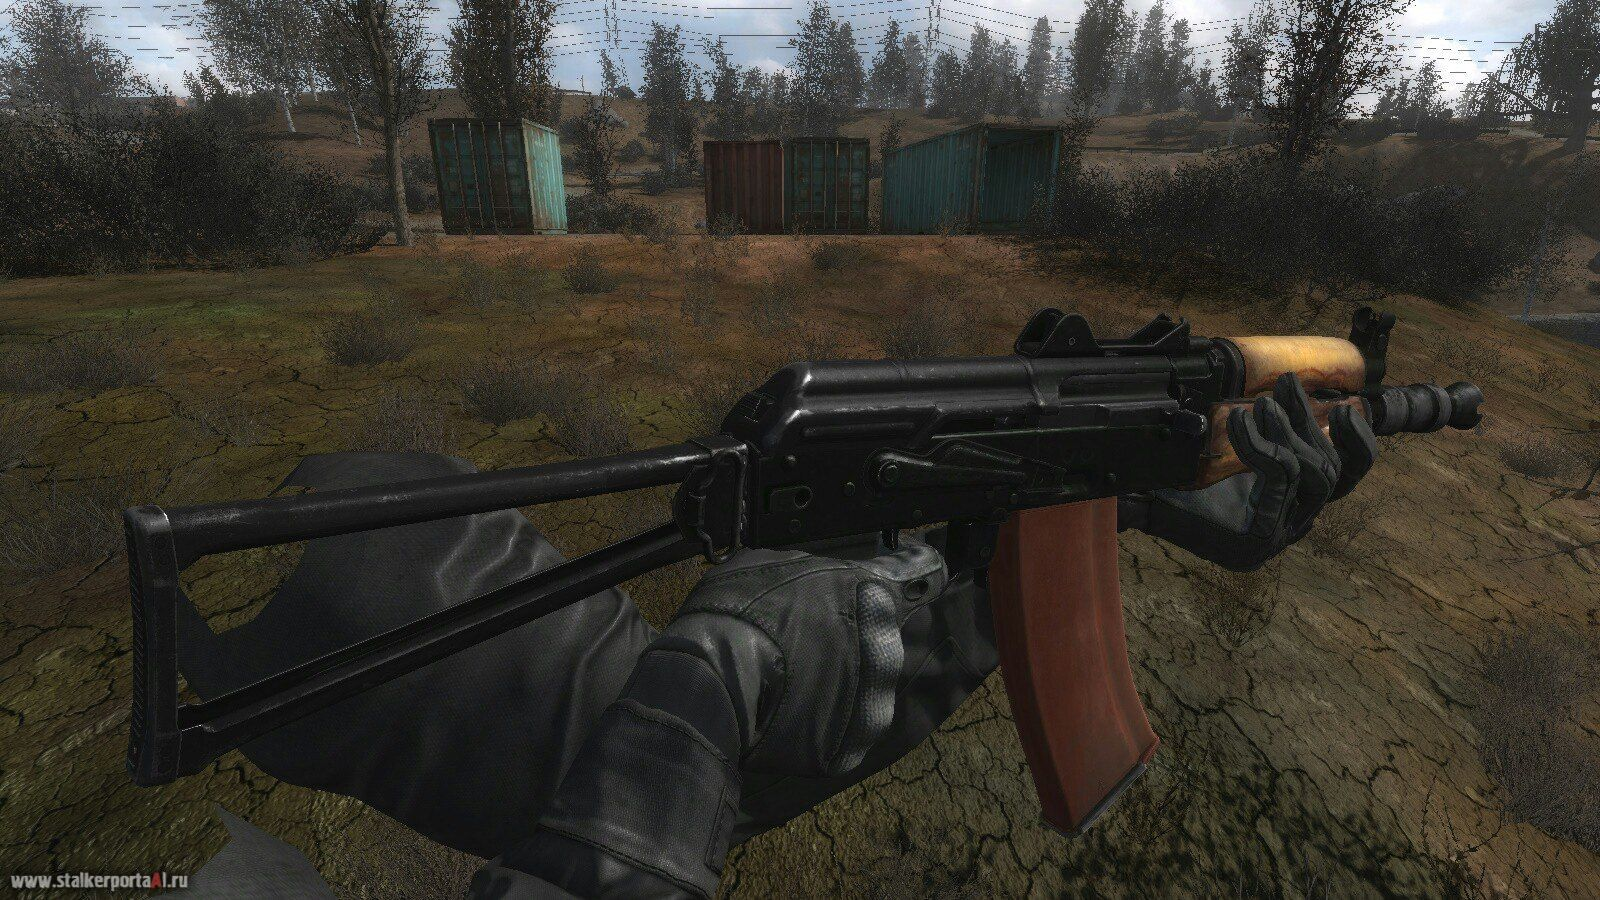 S.T.A.L.K.E.R EFT Weapons Pack